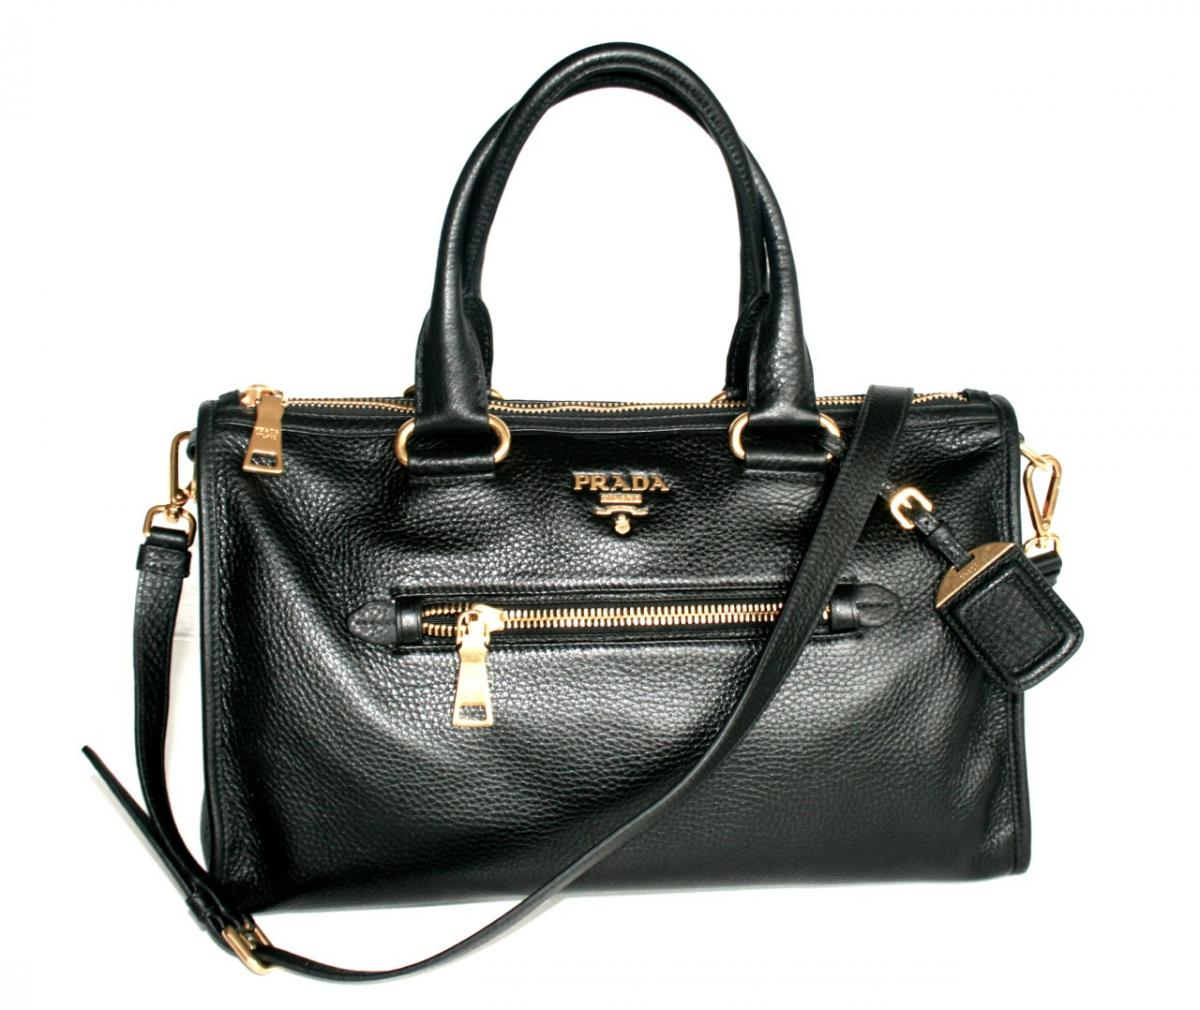 126830bd9bc326 AUTHENTIC LUXURY PRADA SHOULDER BAG HANDBAG BL0805 BLACK NEW | eBay